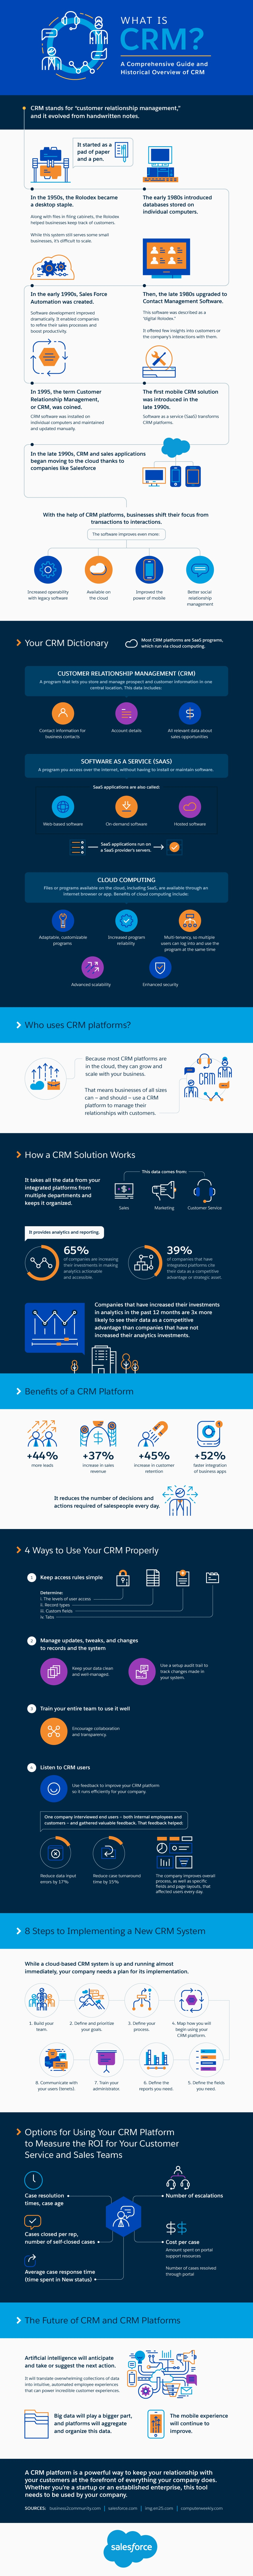 What is CRM Software? A Comprehensive Guide and Historical Overview of CRM [Infographic] | Social Media Today